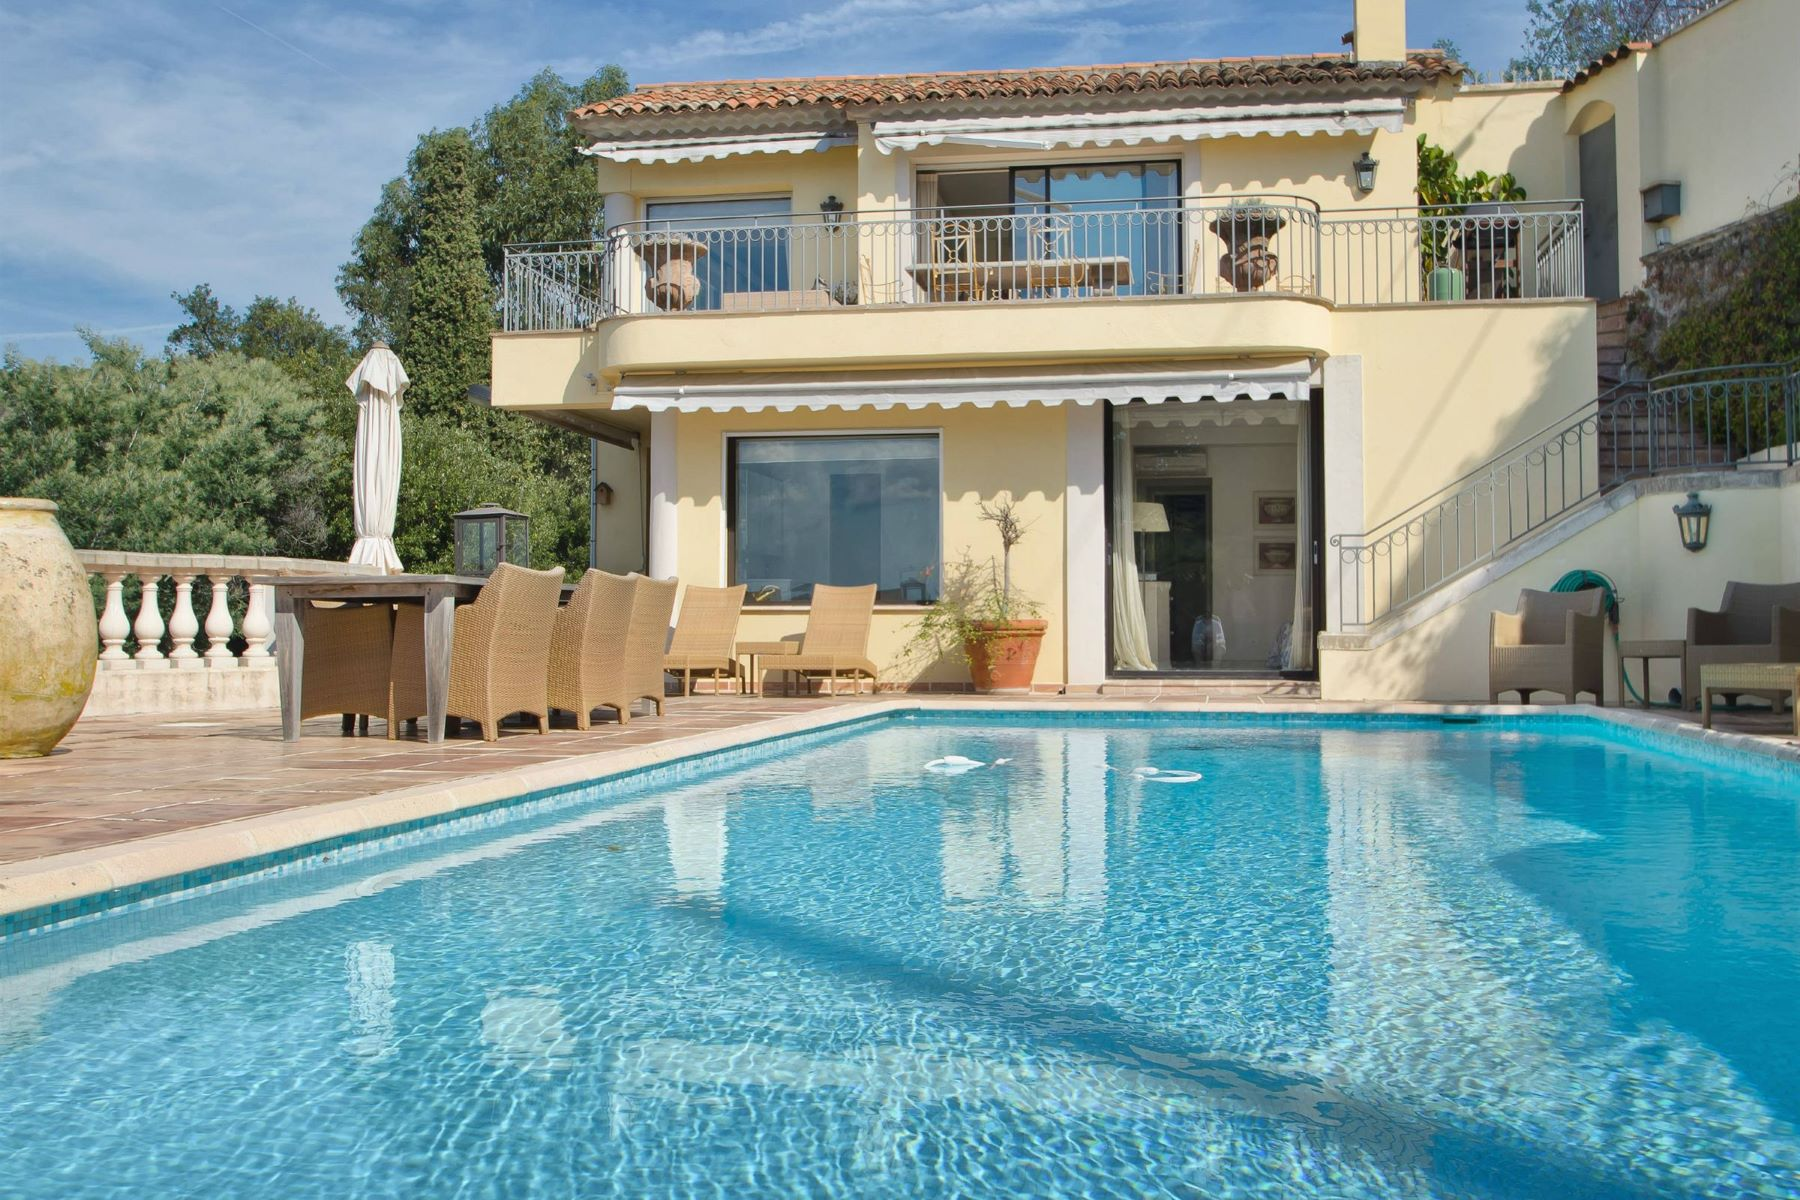 Single Family Home for Sale at Cannes Californie - beautiful sea view Cannes, Provence-Alpes-Cote D'Azur, 06400 France